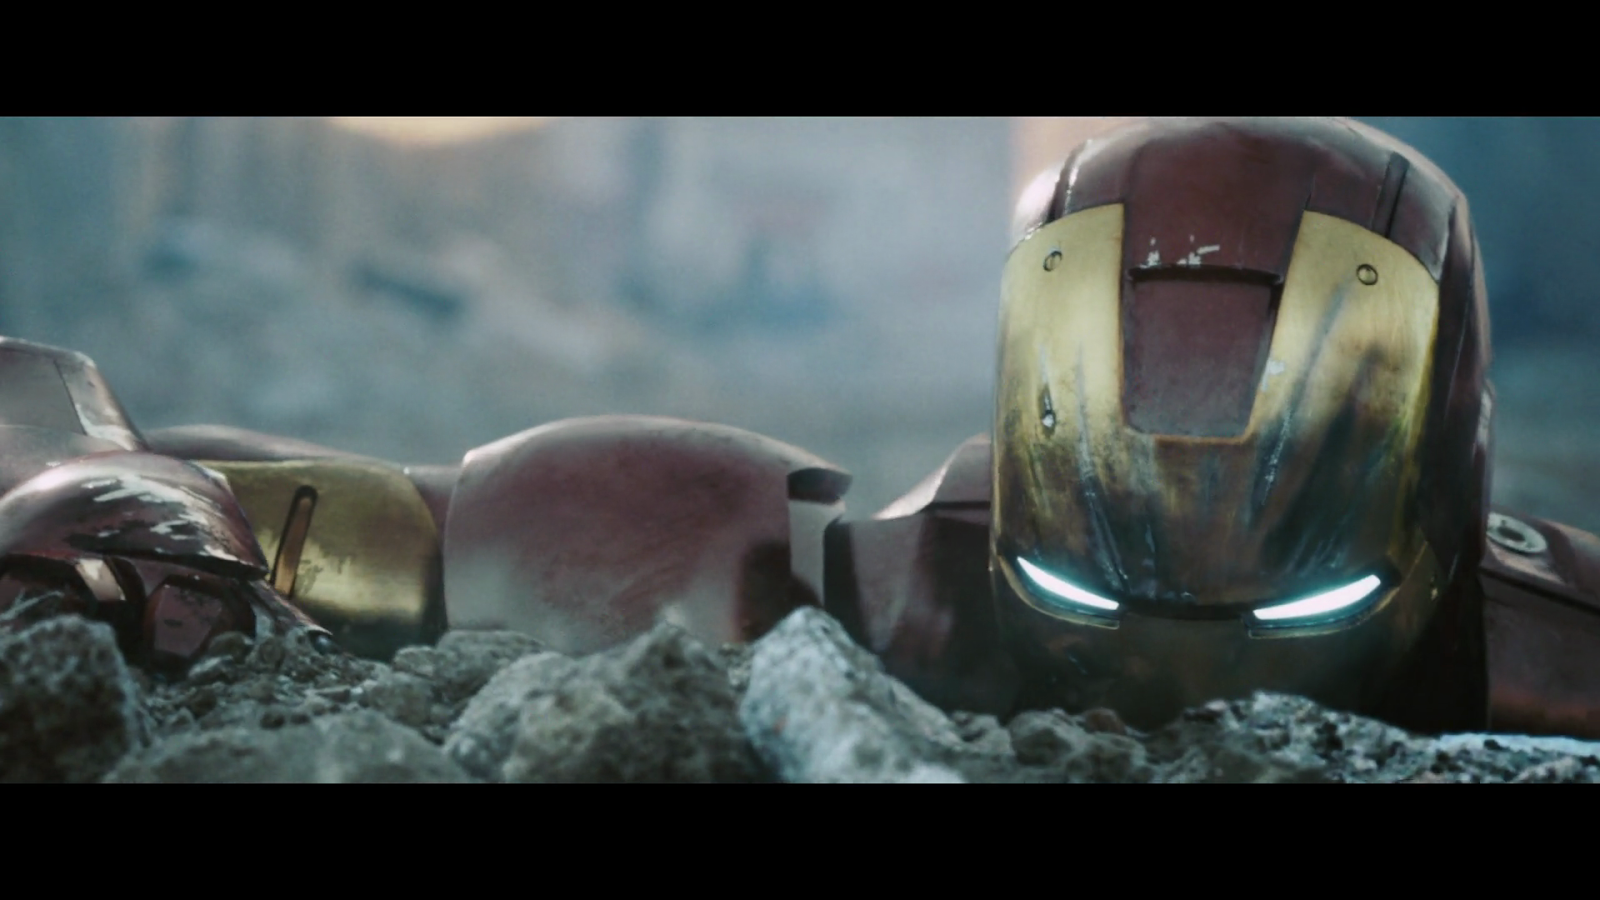 know many other people Iron man too Heres 50 Iron man wallpapers 1600x900